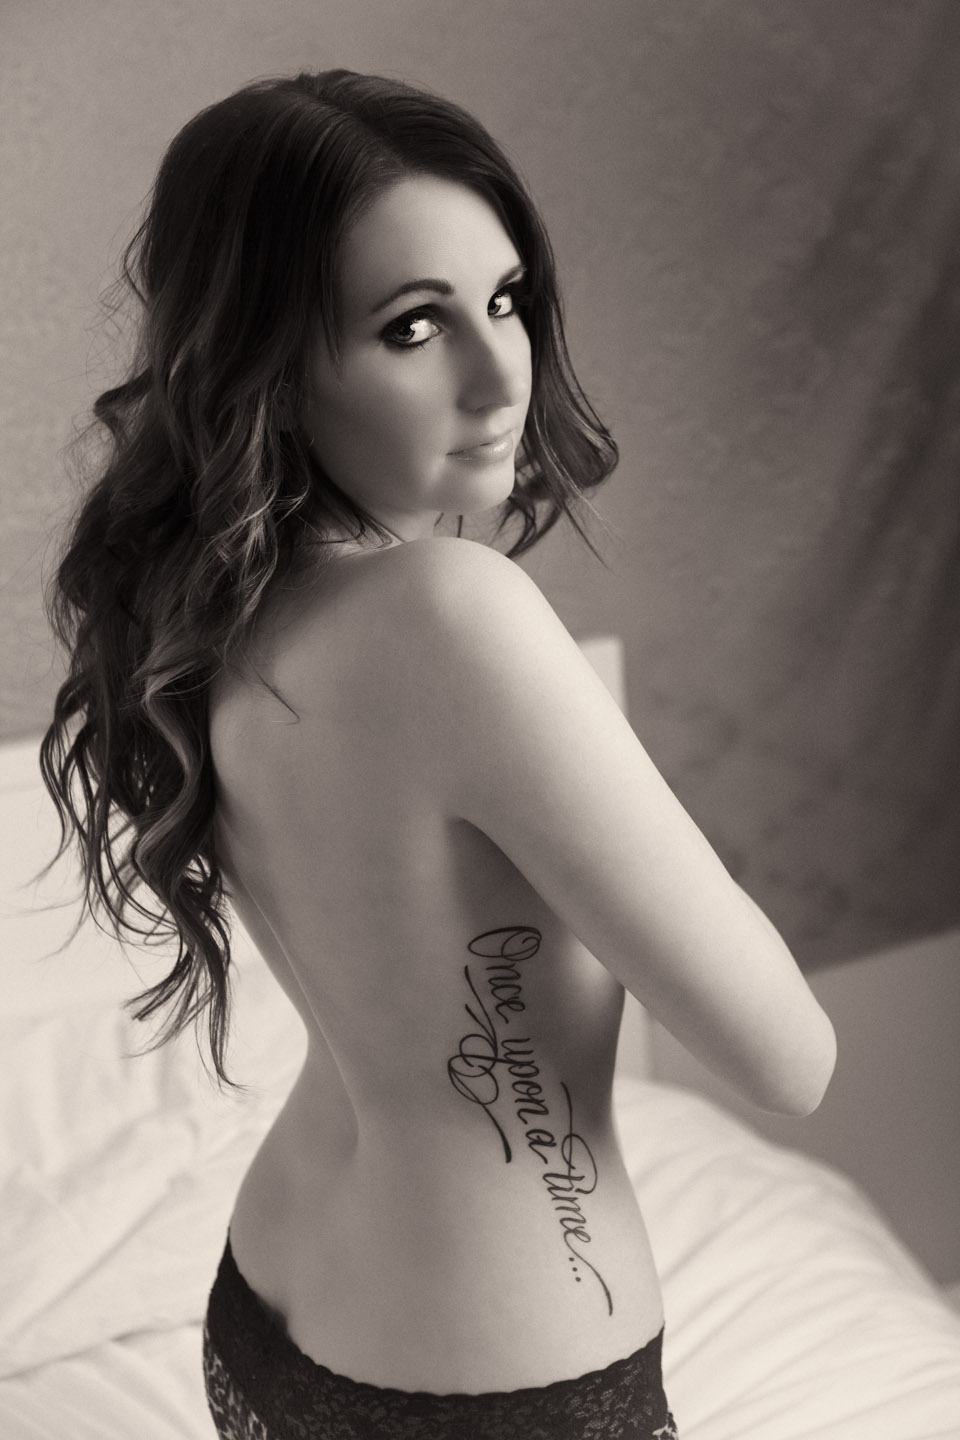 One of my two favorite photos from the boudoir shoot